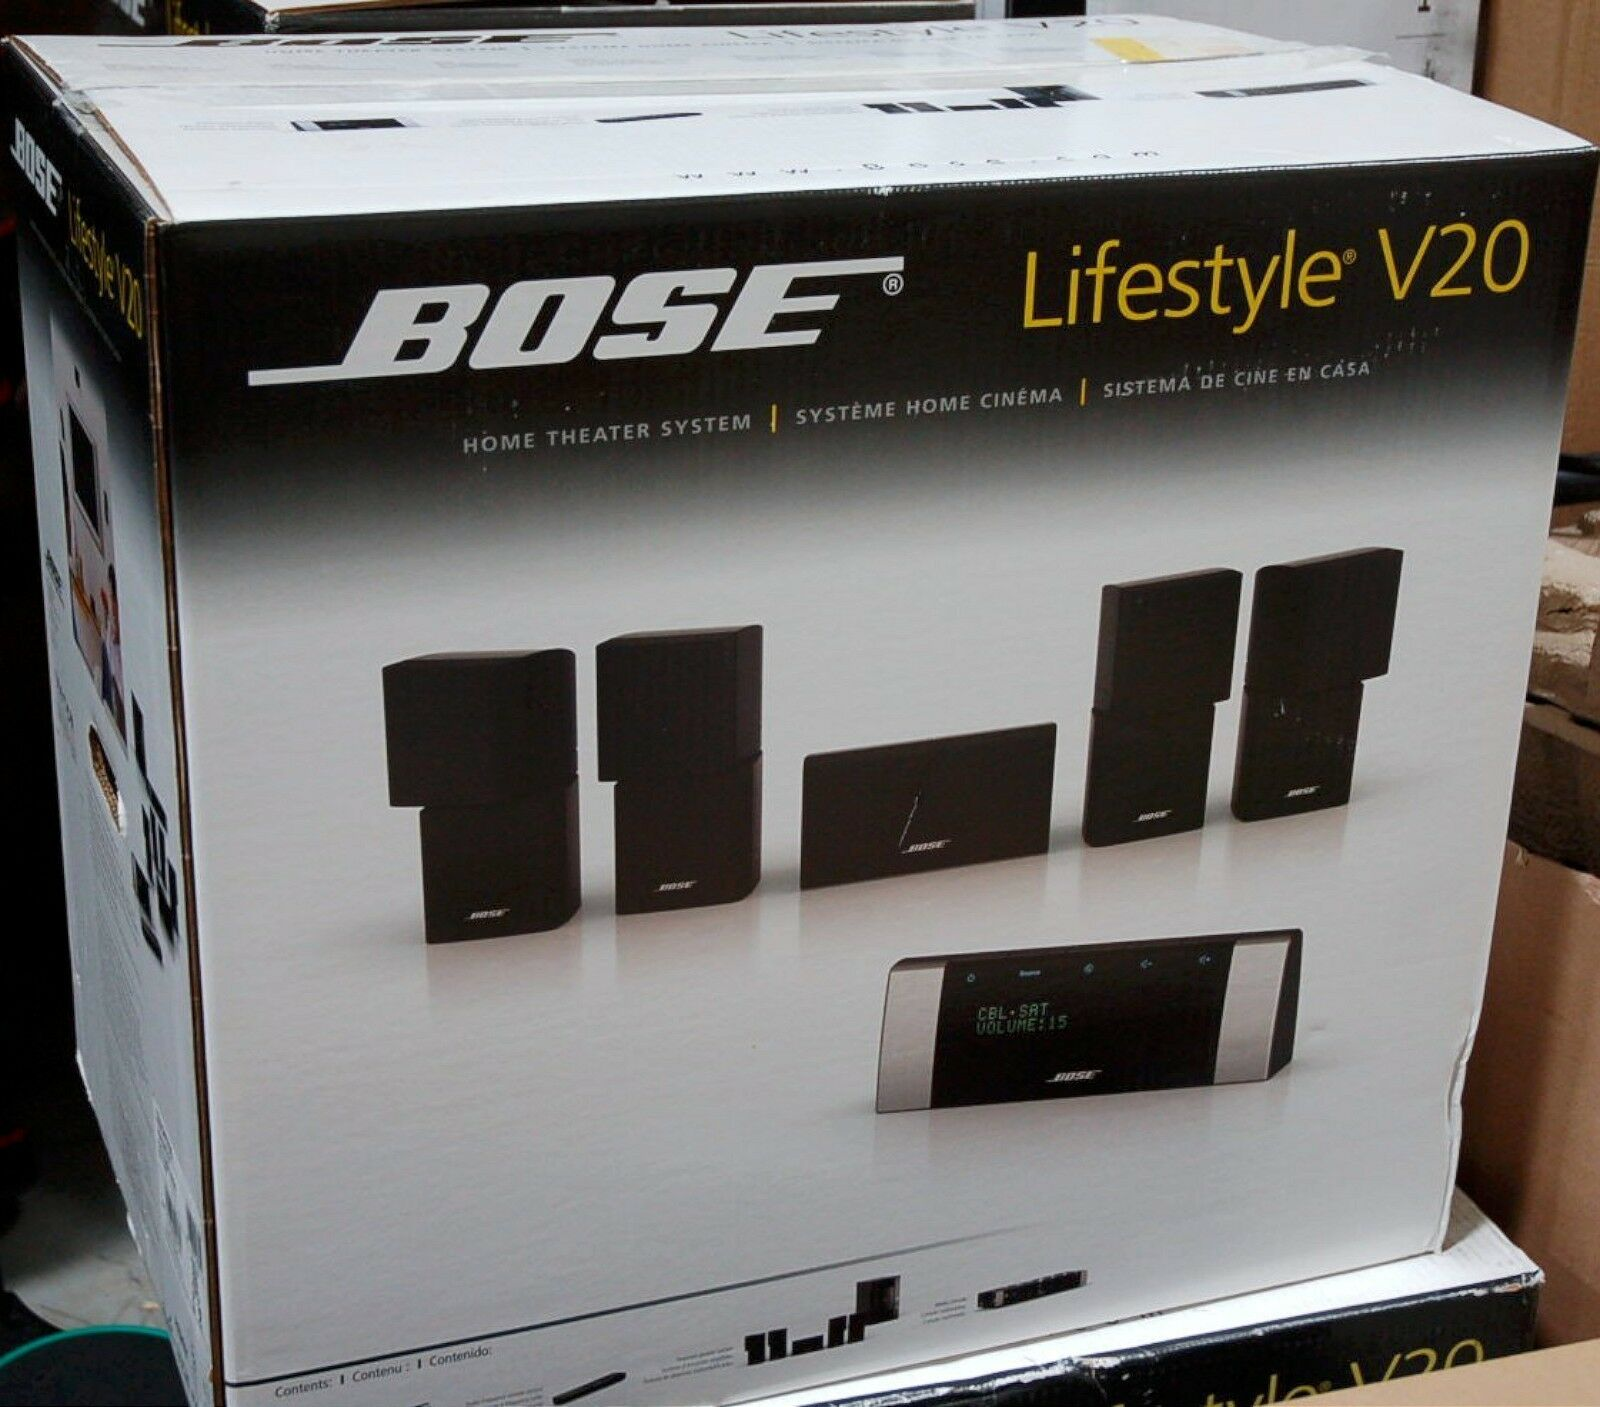 Bose Lifestyle V20 Hdmi Home Theater 51 Speaker System Set Surround 1 Sound 1080p Of 3only 3 Available See More